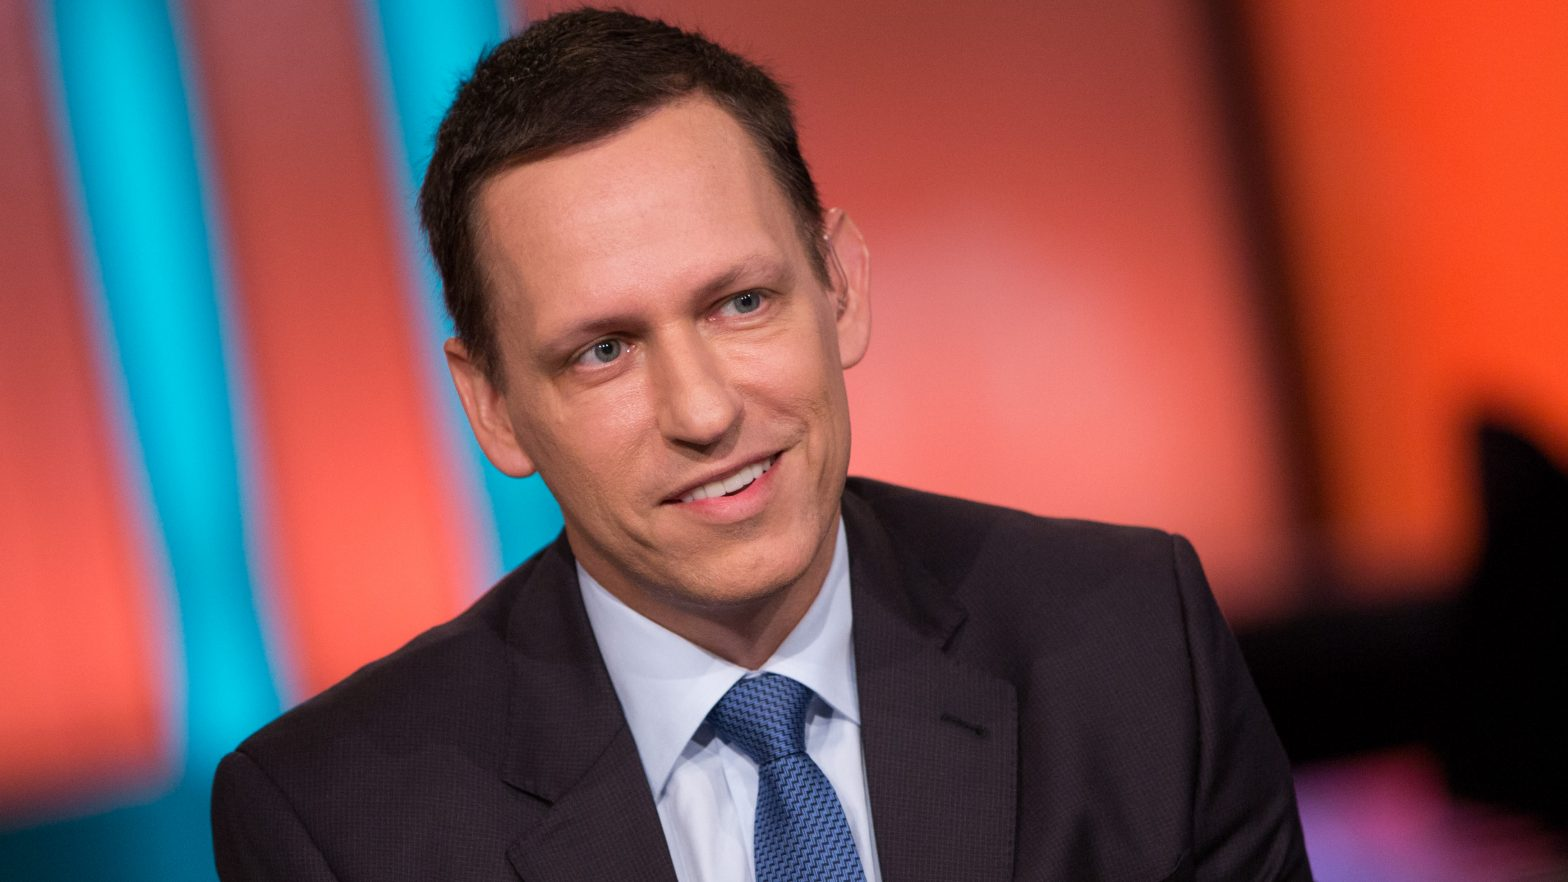 Peter Thiel says Elon Musk is a 'negative role model' because he's too hard to emulate – CNBC